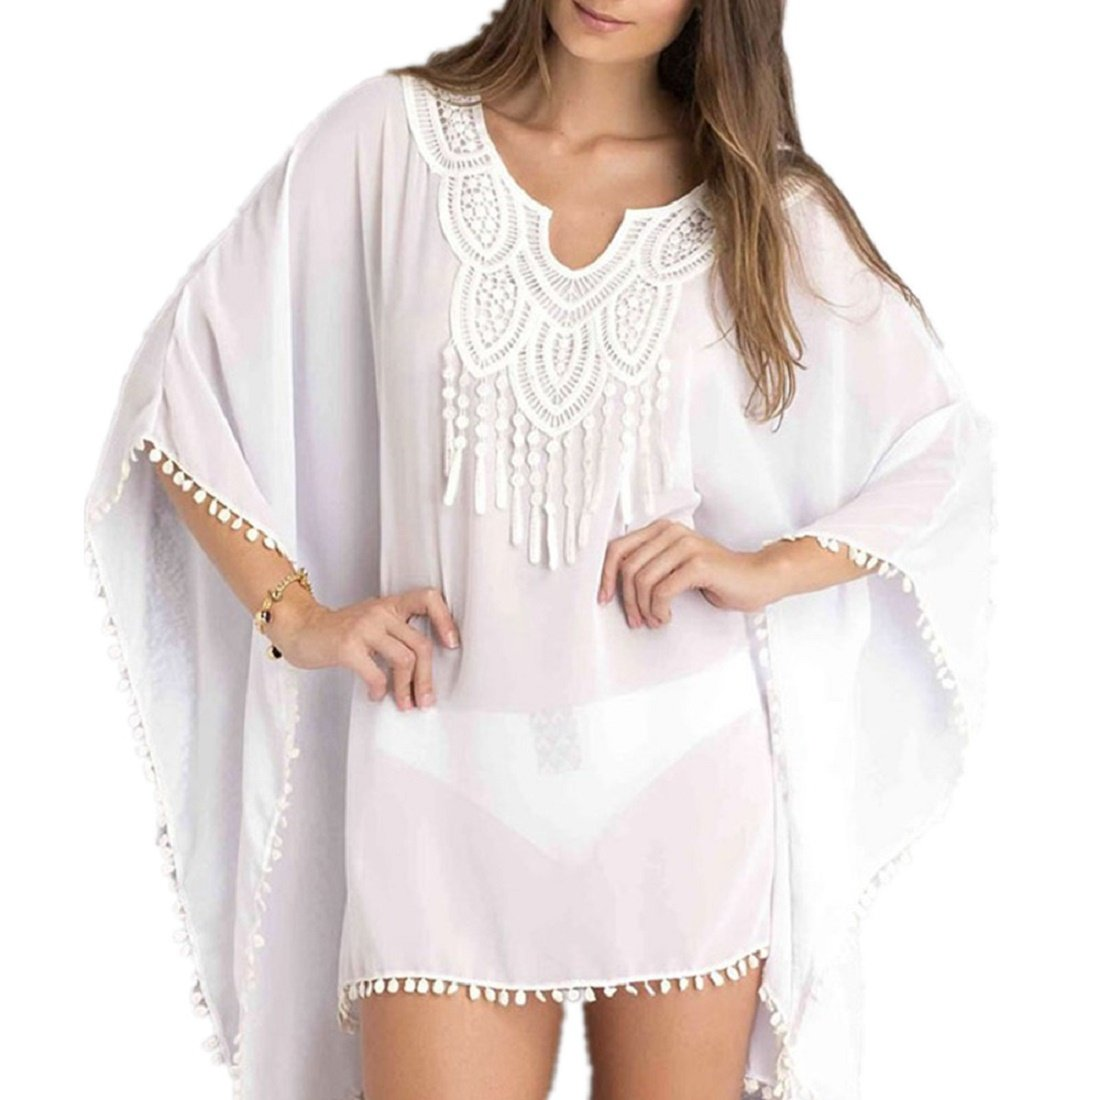 Lace Front Chiffon Bikini Beach Wear Cover up Beach Dress(White) HeartBee HB2281943